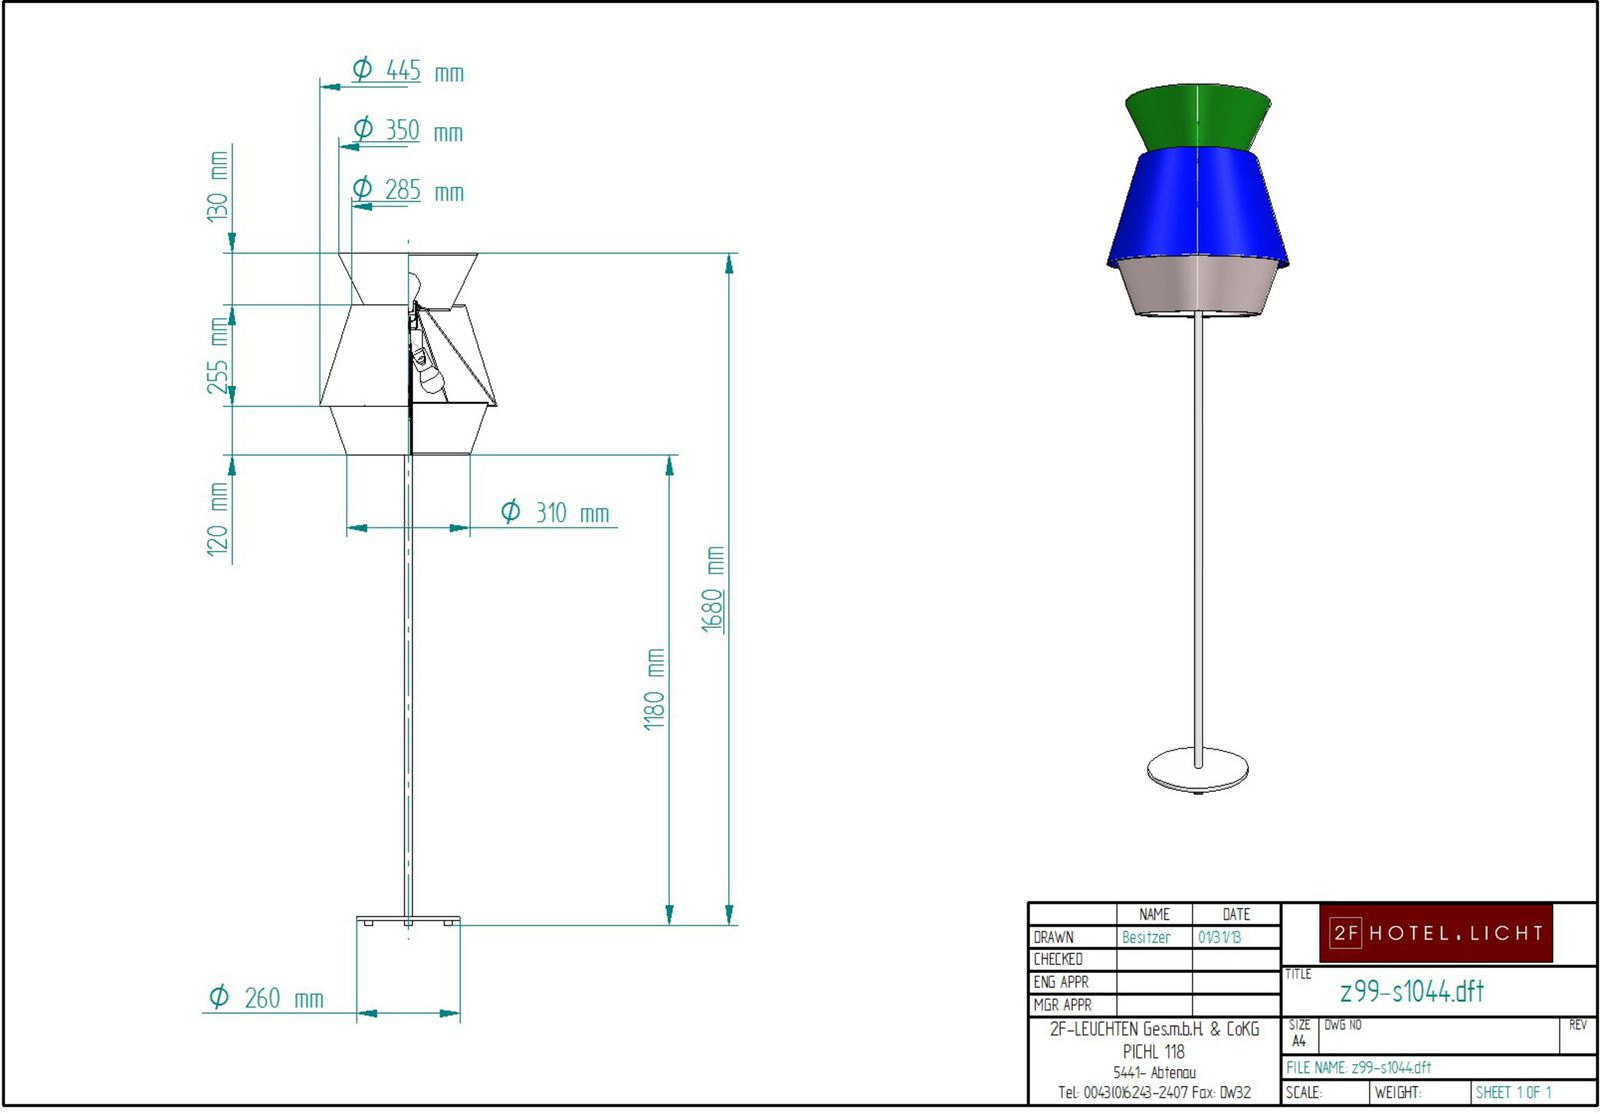 floor lamp 3 flg., height=1680mm, techn. details: 3xE27, 60W